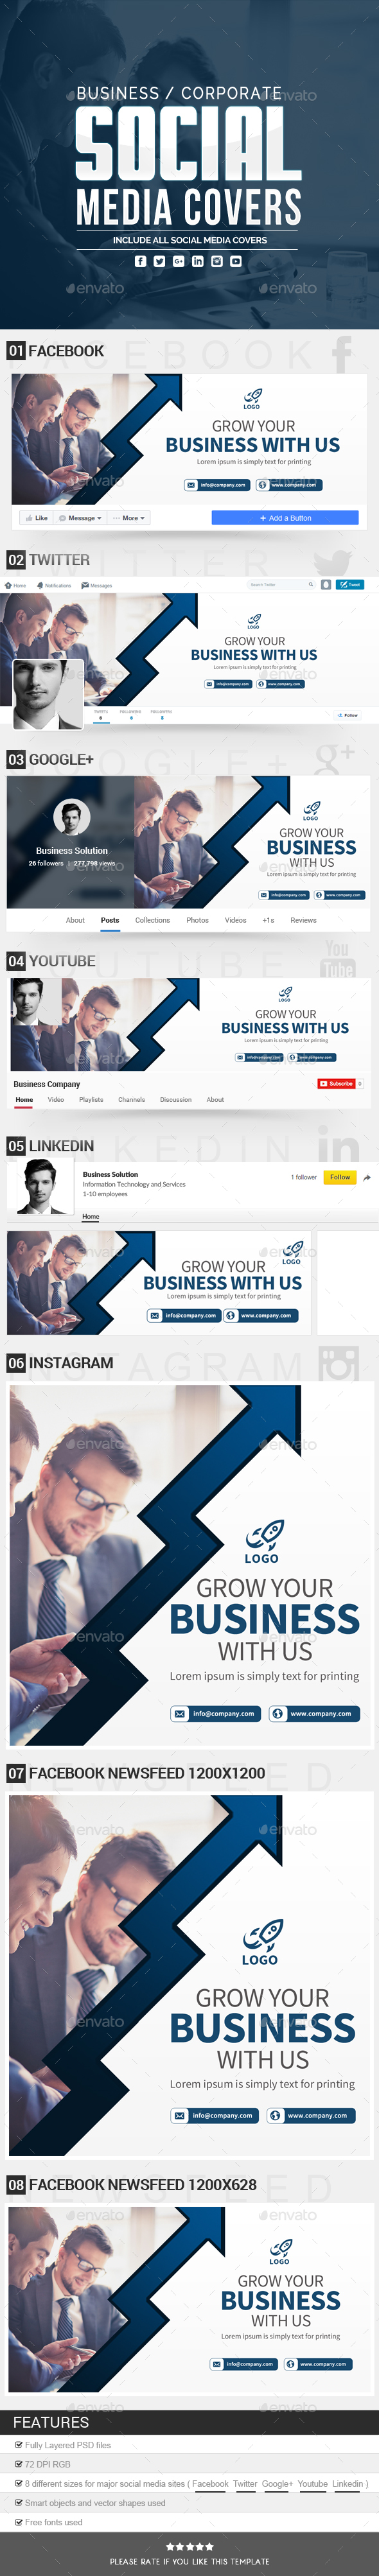 Business Social Media Covers - Social Media Web Elements